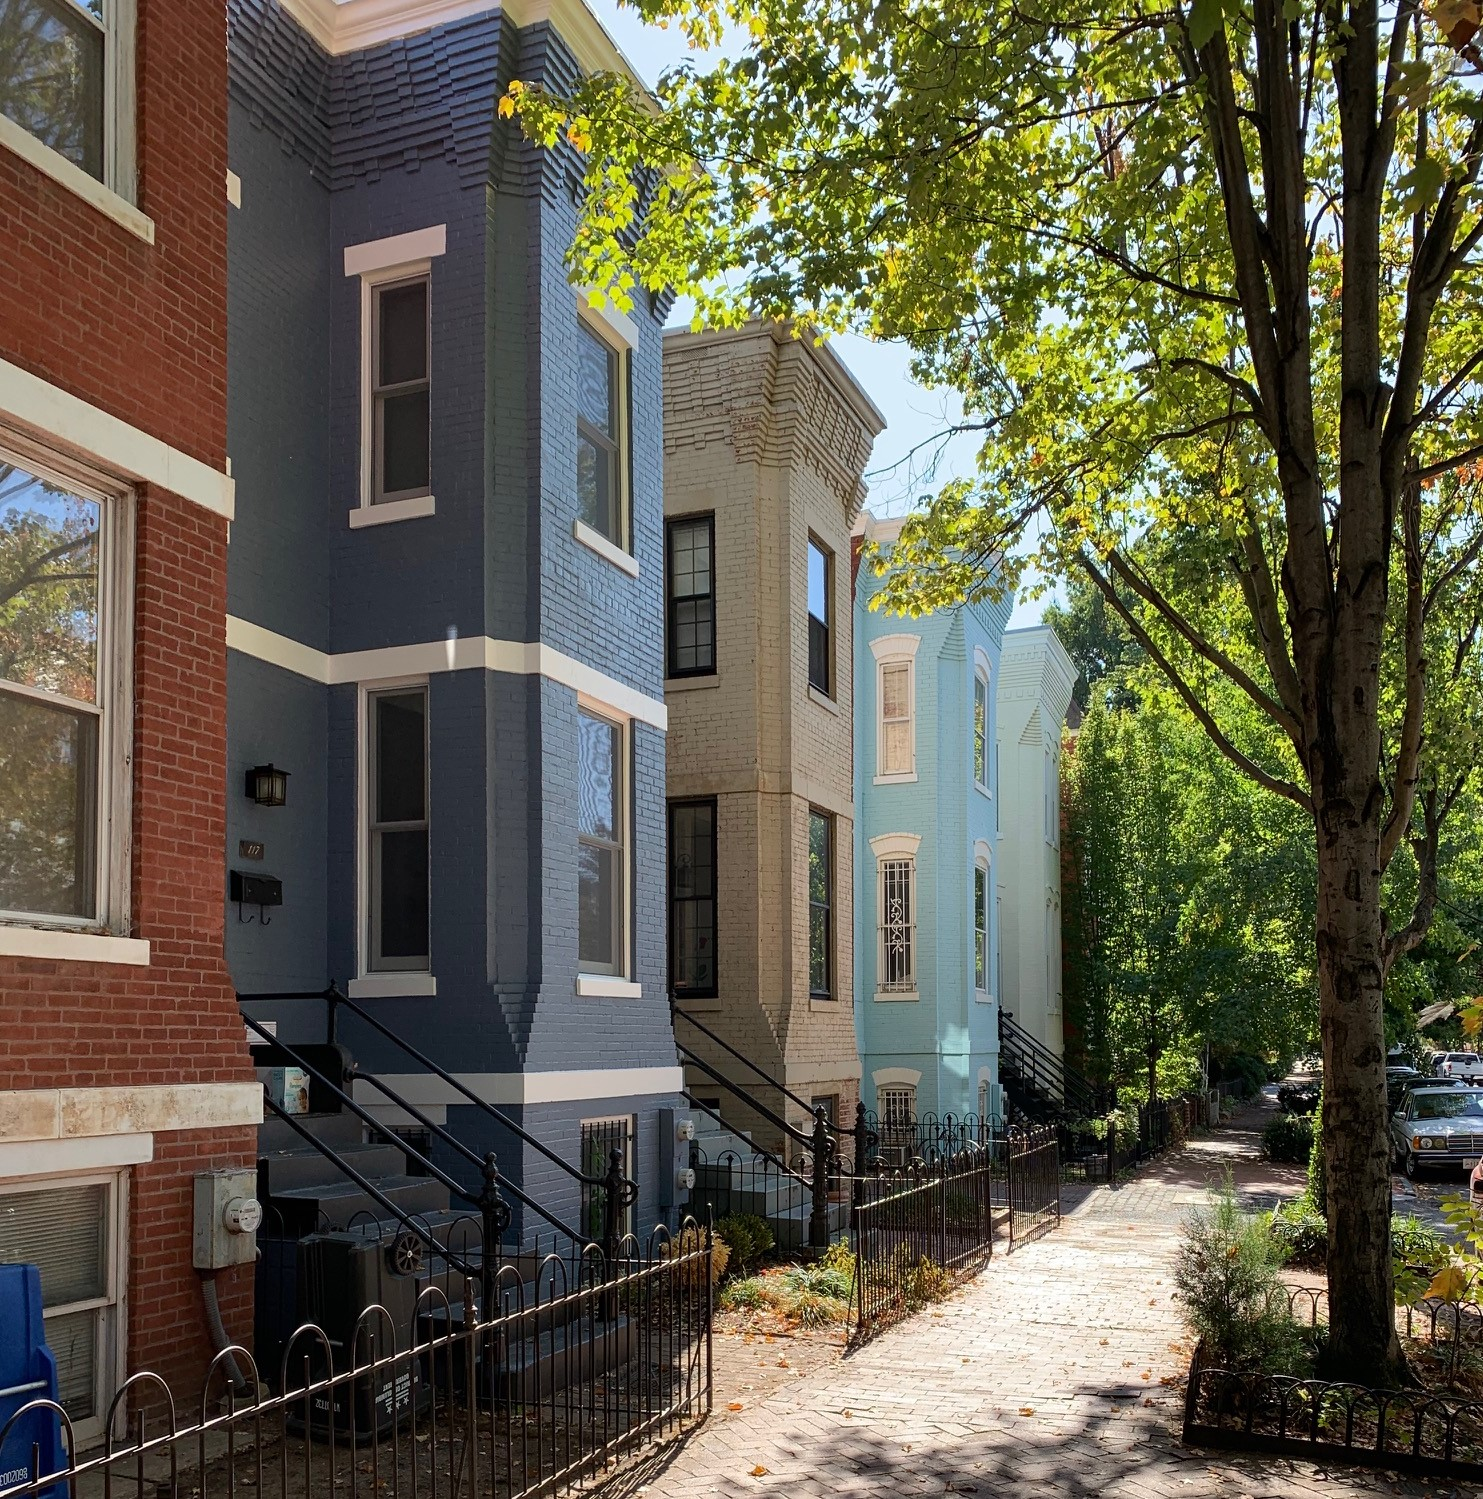 Washington, DC Historic Homes For Sale. 10th St NE in Capitol Hill. Artyom Shmatko Luxury Real Estate Agent